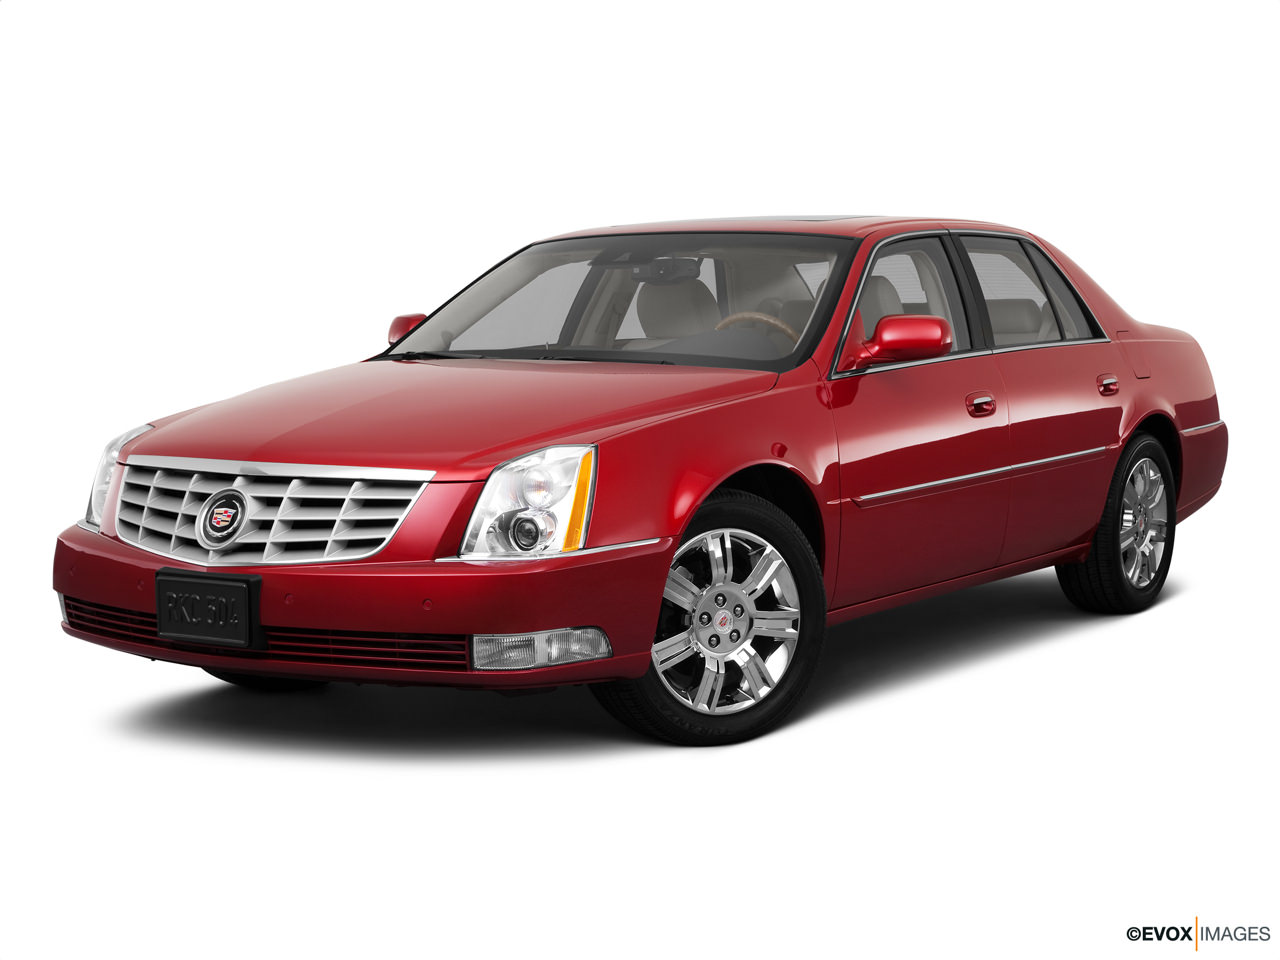 a buyer s guide to the 2011 cadillac dts yourmechanic advice rh yourmechanic com 2008 cadillac dts user manual cadillac dts owners manual